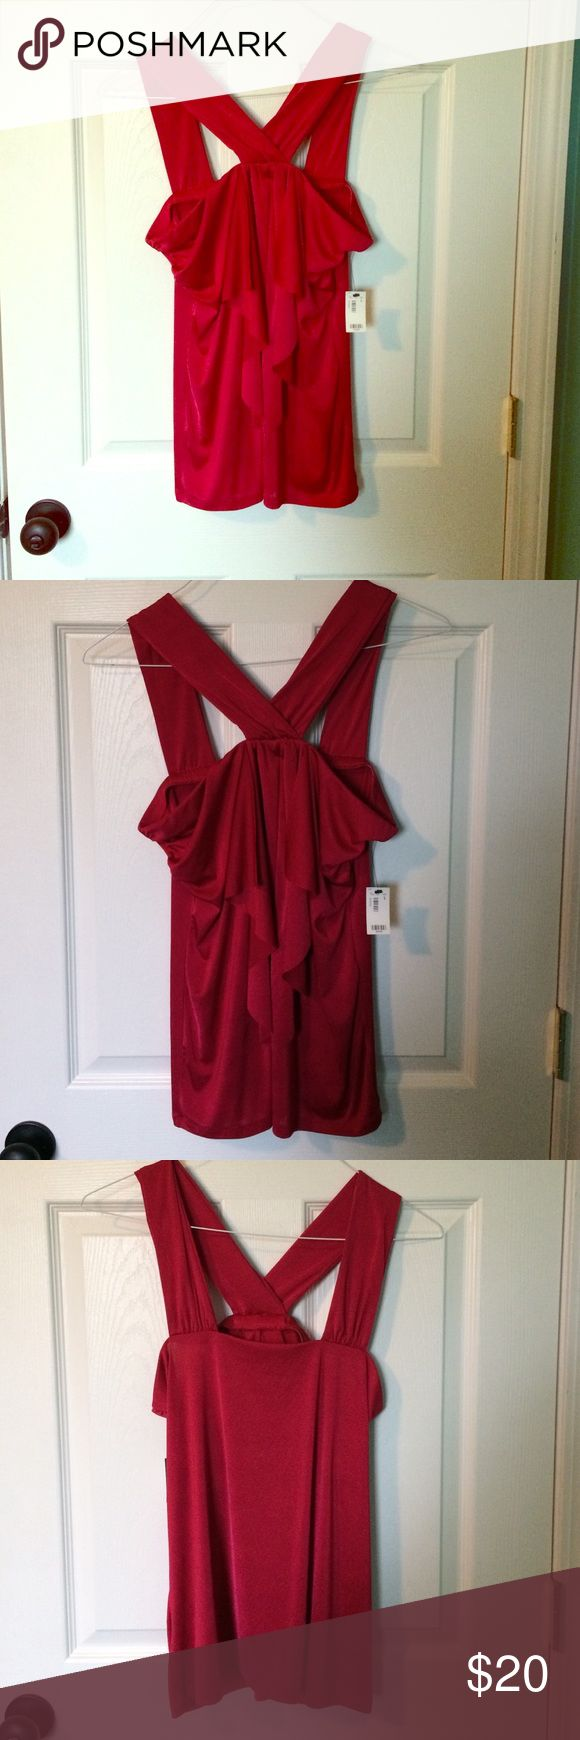 Sexy Red Top - Perfect for Valentines Elegant red strappy top with flattering front ruffles.  Never worn with tags.  Size L The Limited Tops